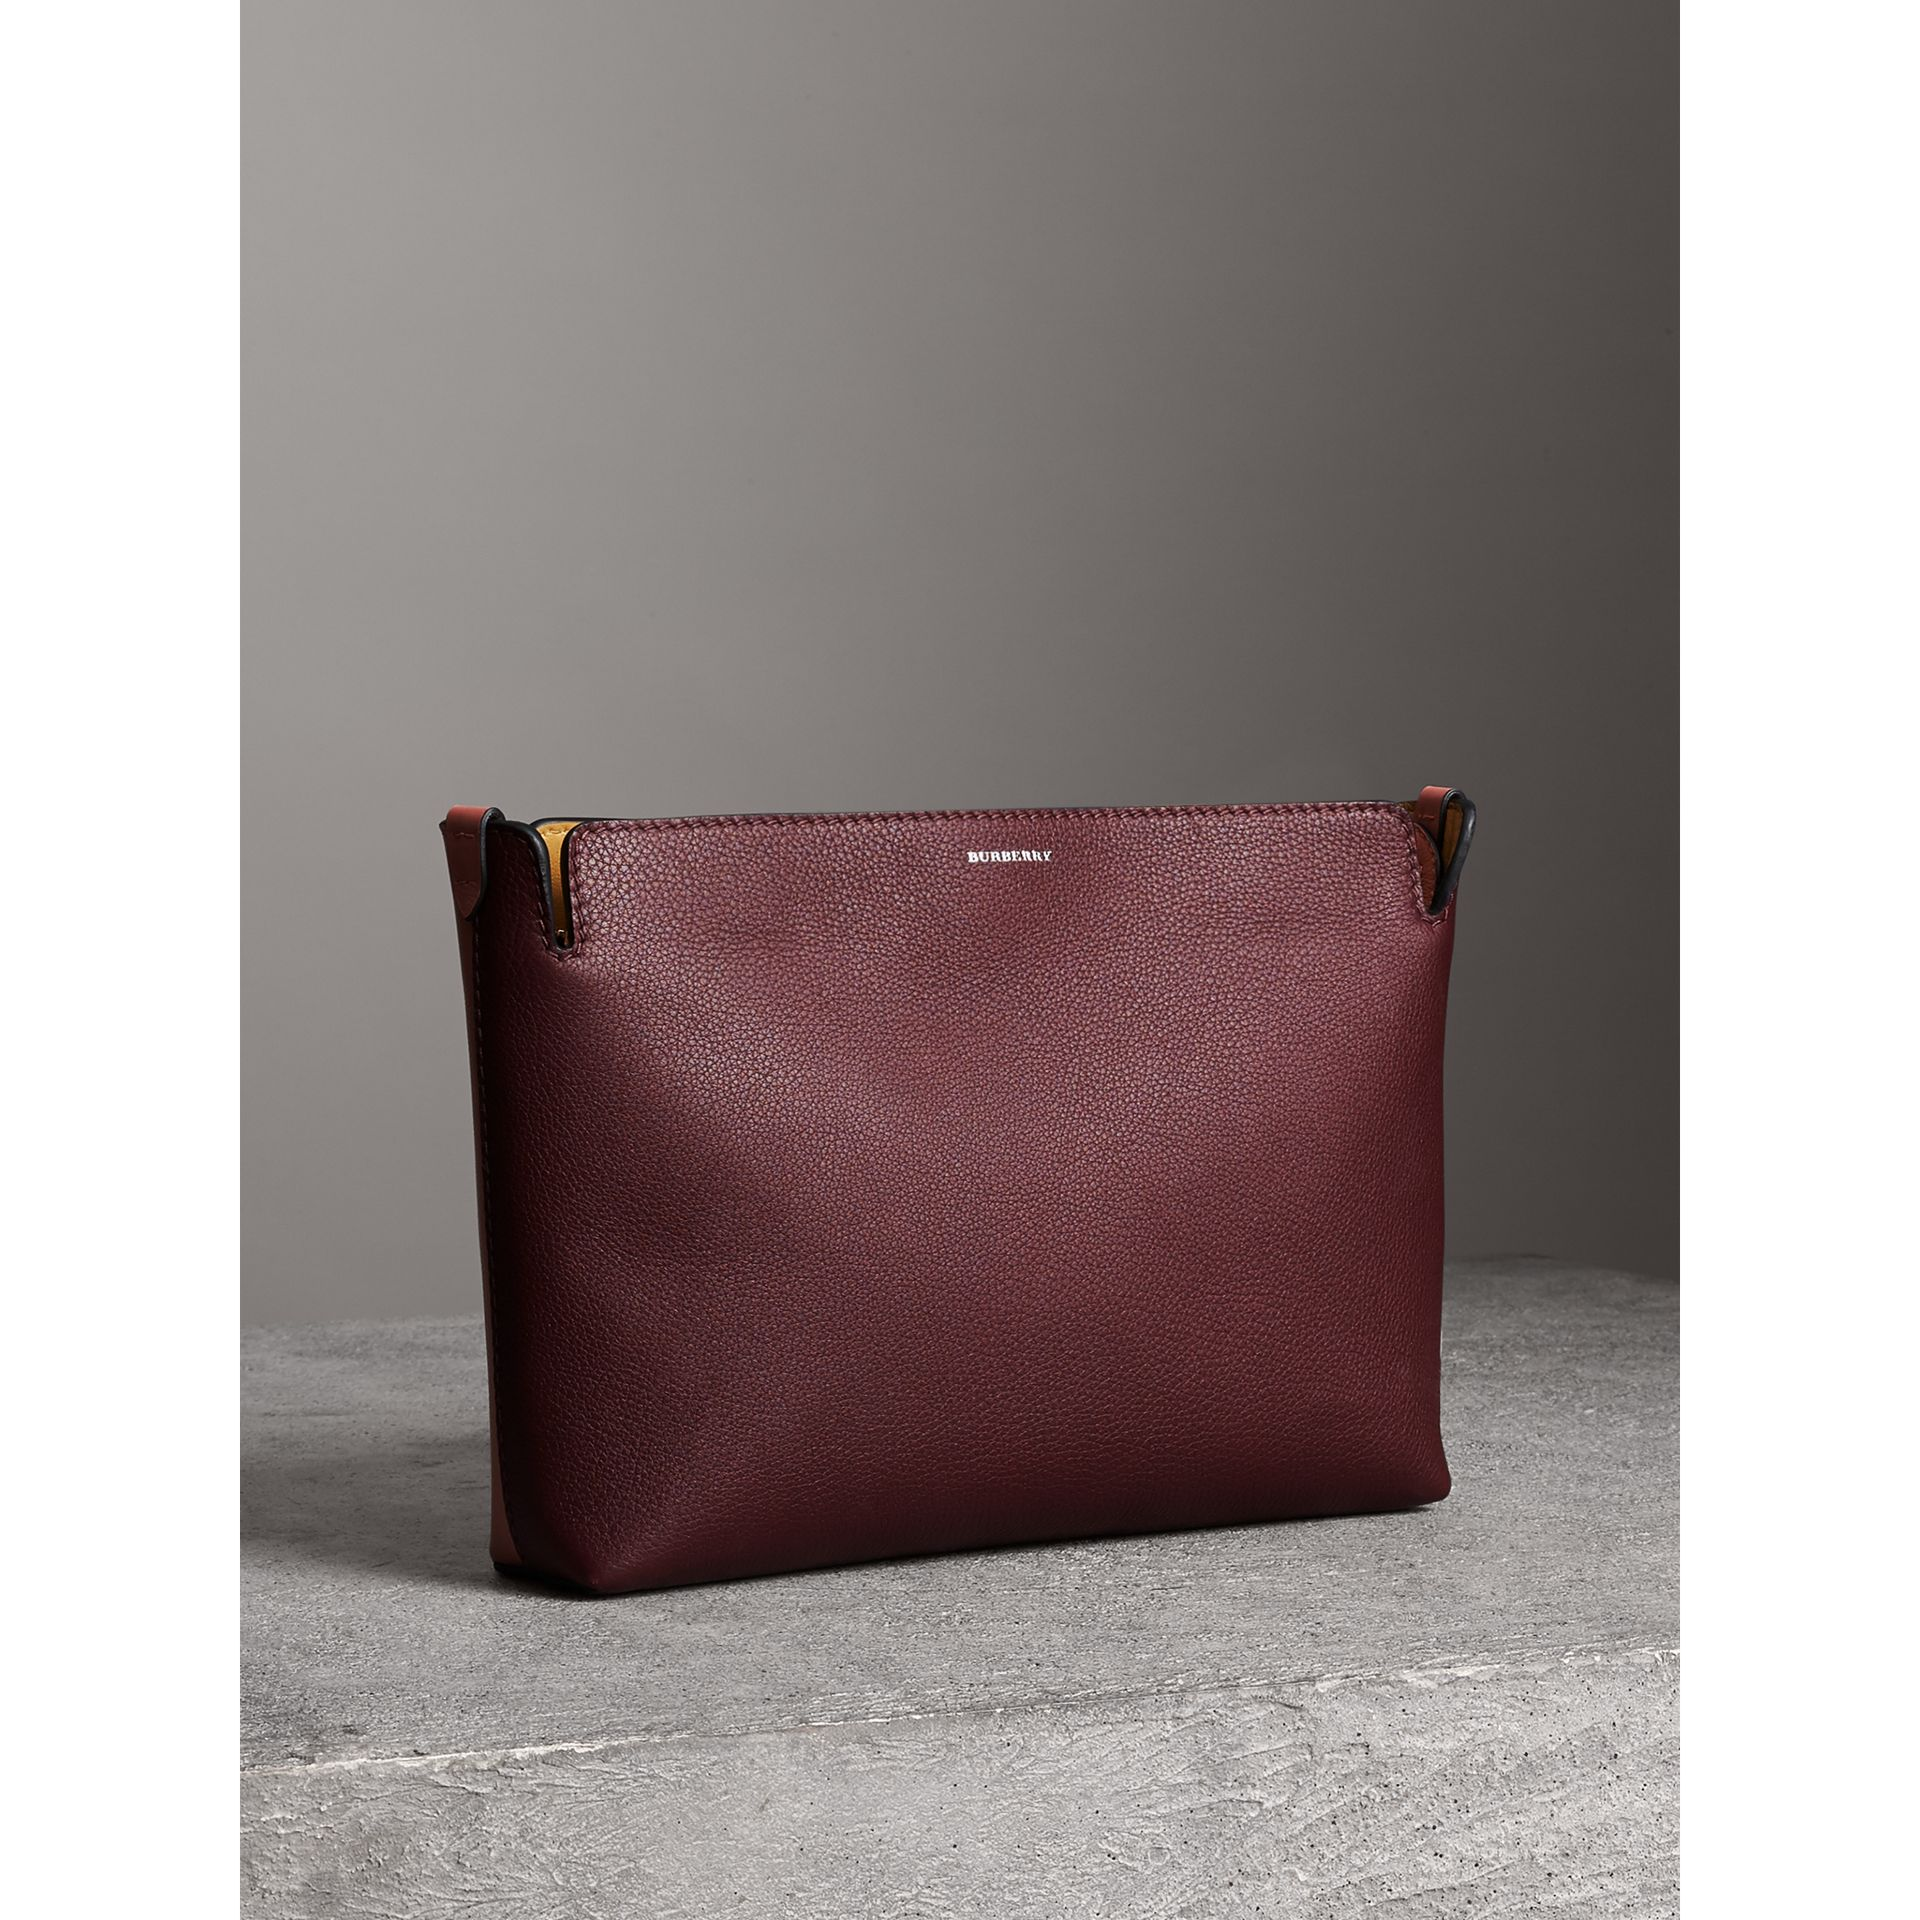 Medium Tri-tone Leather Clutch in Deep Claret/dusty Rose | Burberry Hong Kong - gallery image 6